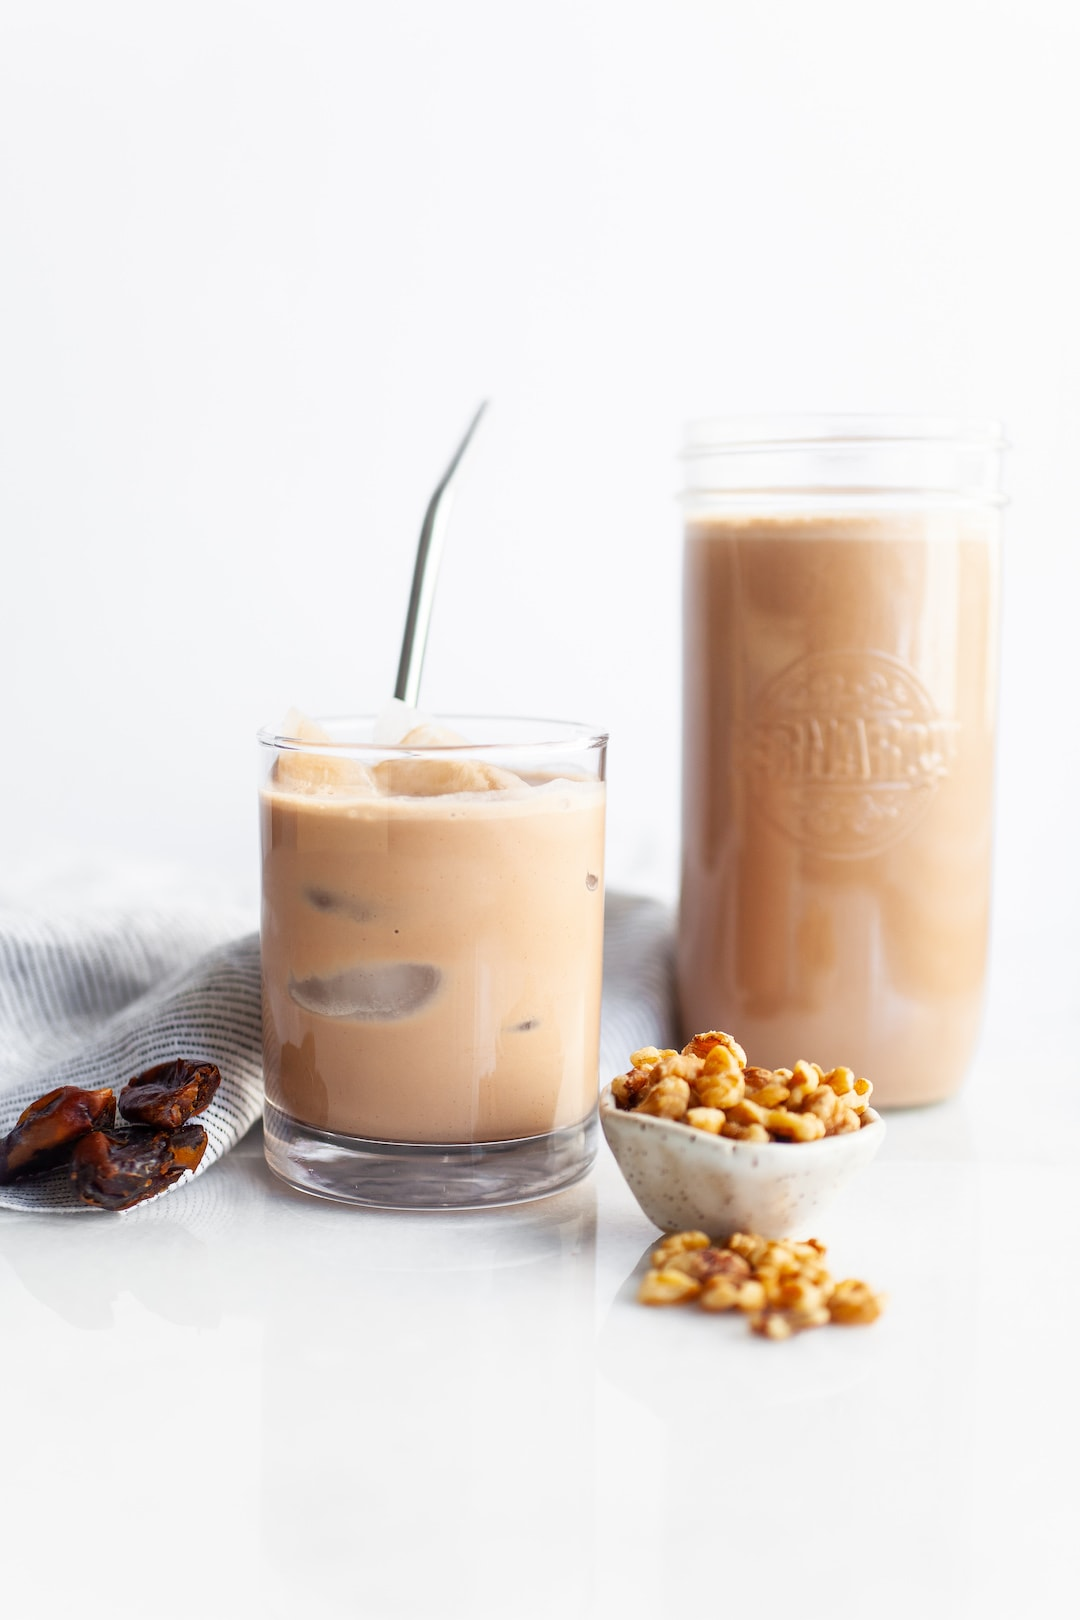 The Easiest Vitamix Walnut Milk (2 Ways!) - Chocolate, naturally sweetened